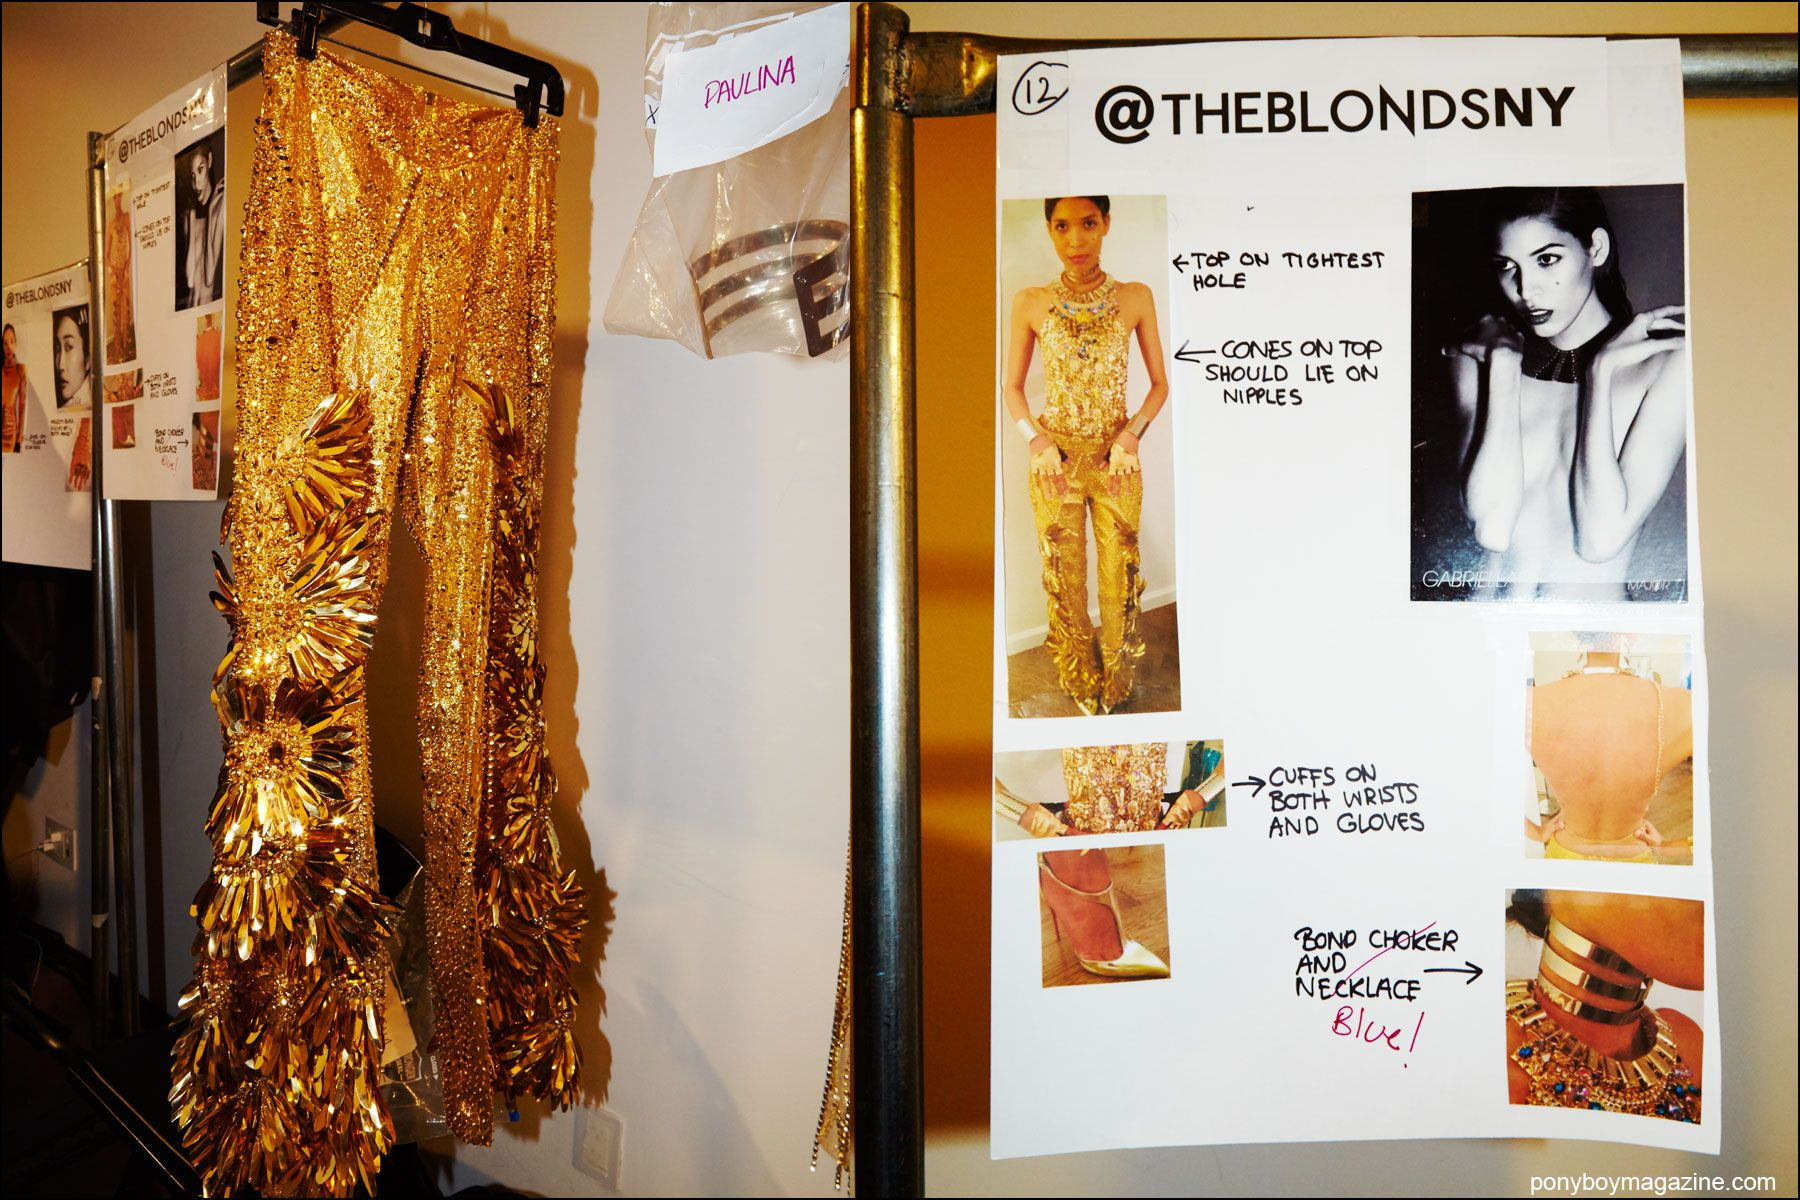 Detail shots of gold trousers and a models comp card, backstage at the Blonds S/S16 runway show. Photography by Alexander Thompson for Ponyboy magazine NY.